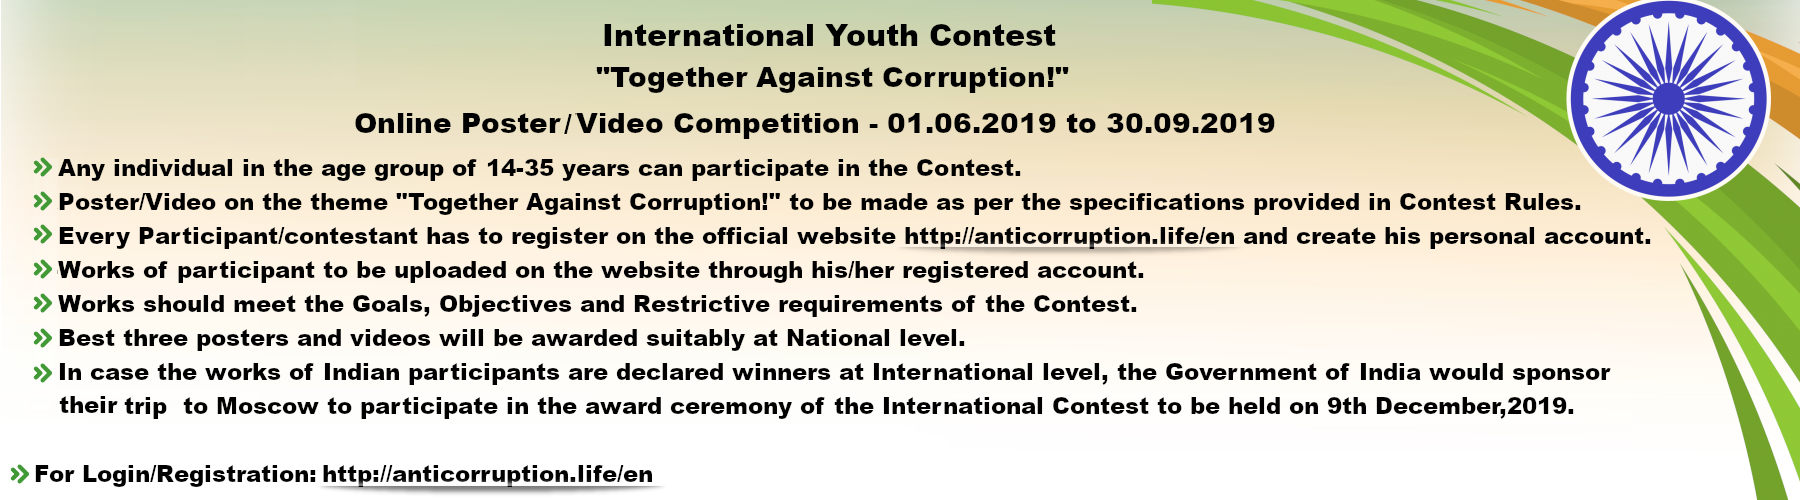 International Youth Contest